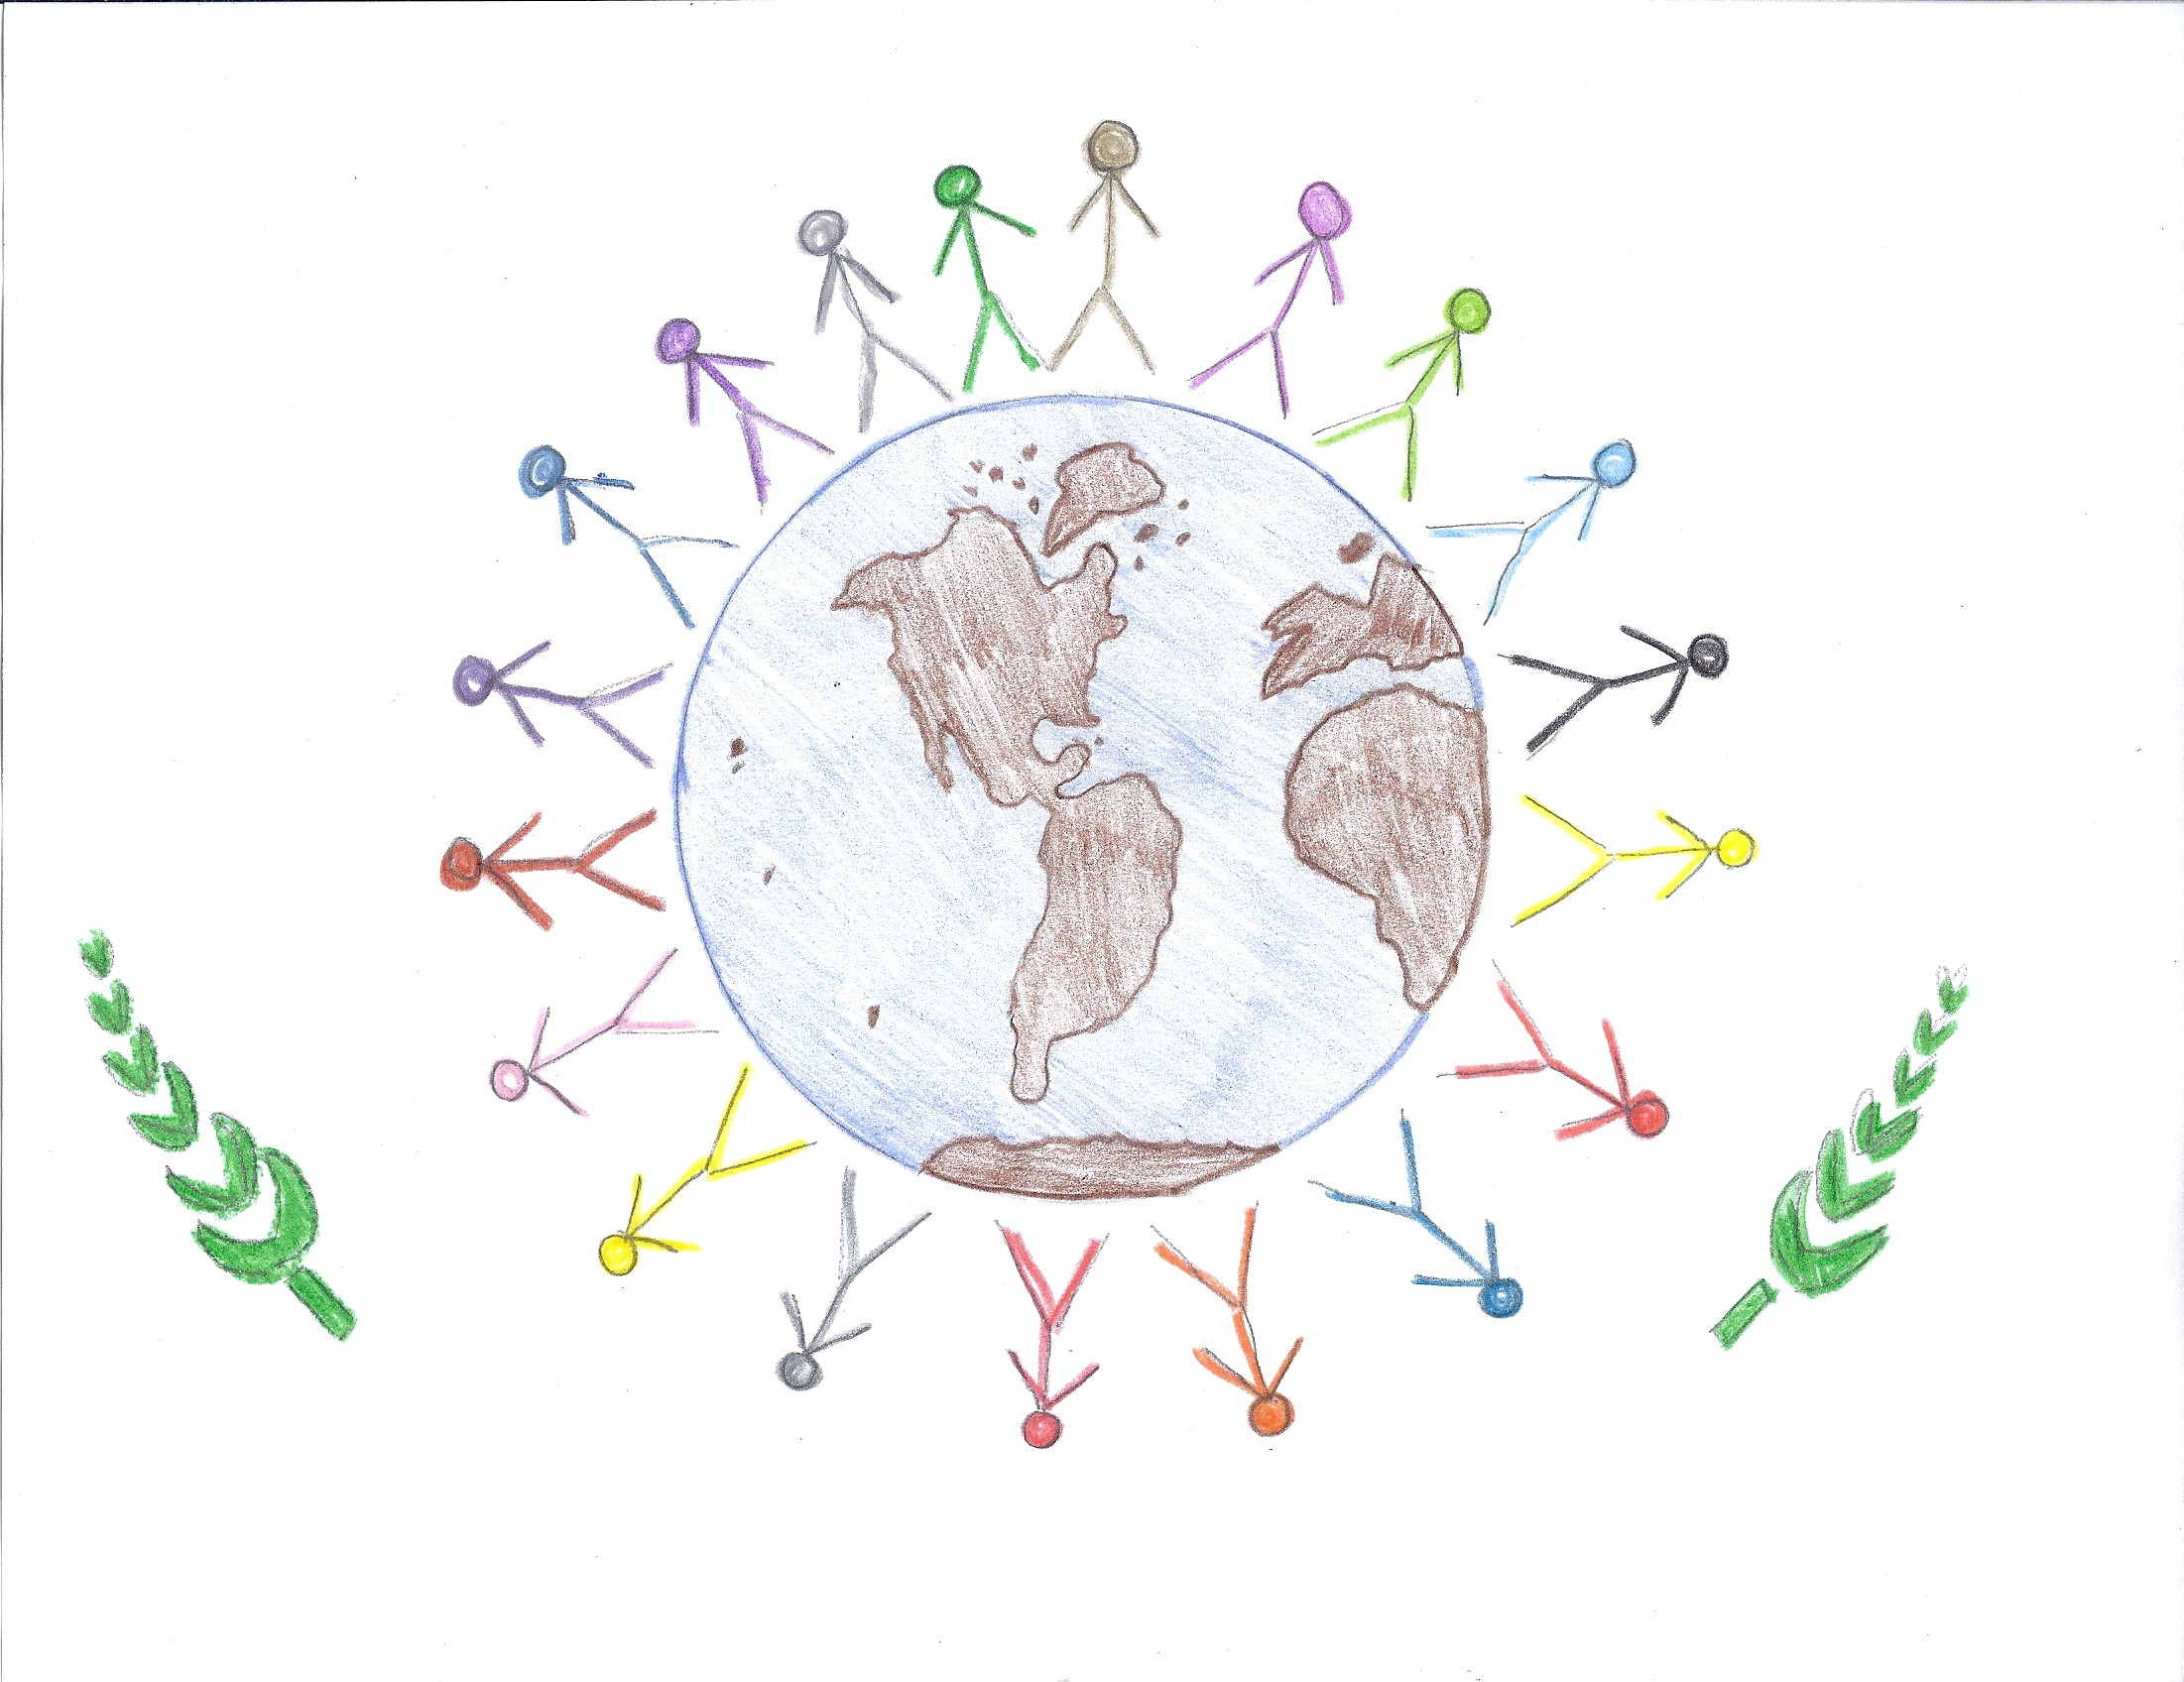 2013 annual art essay poetry competitions what are human rights youth for human rights international launched its global movement an essay contest in 2001 the response to the call for entries describing the